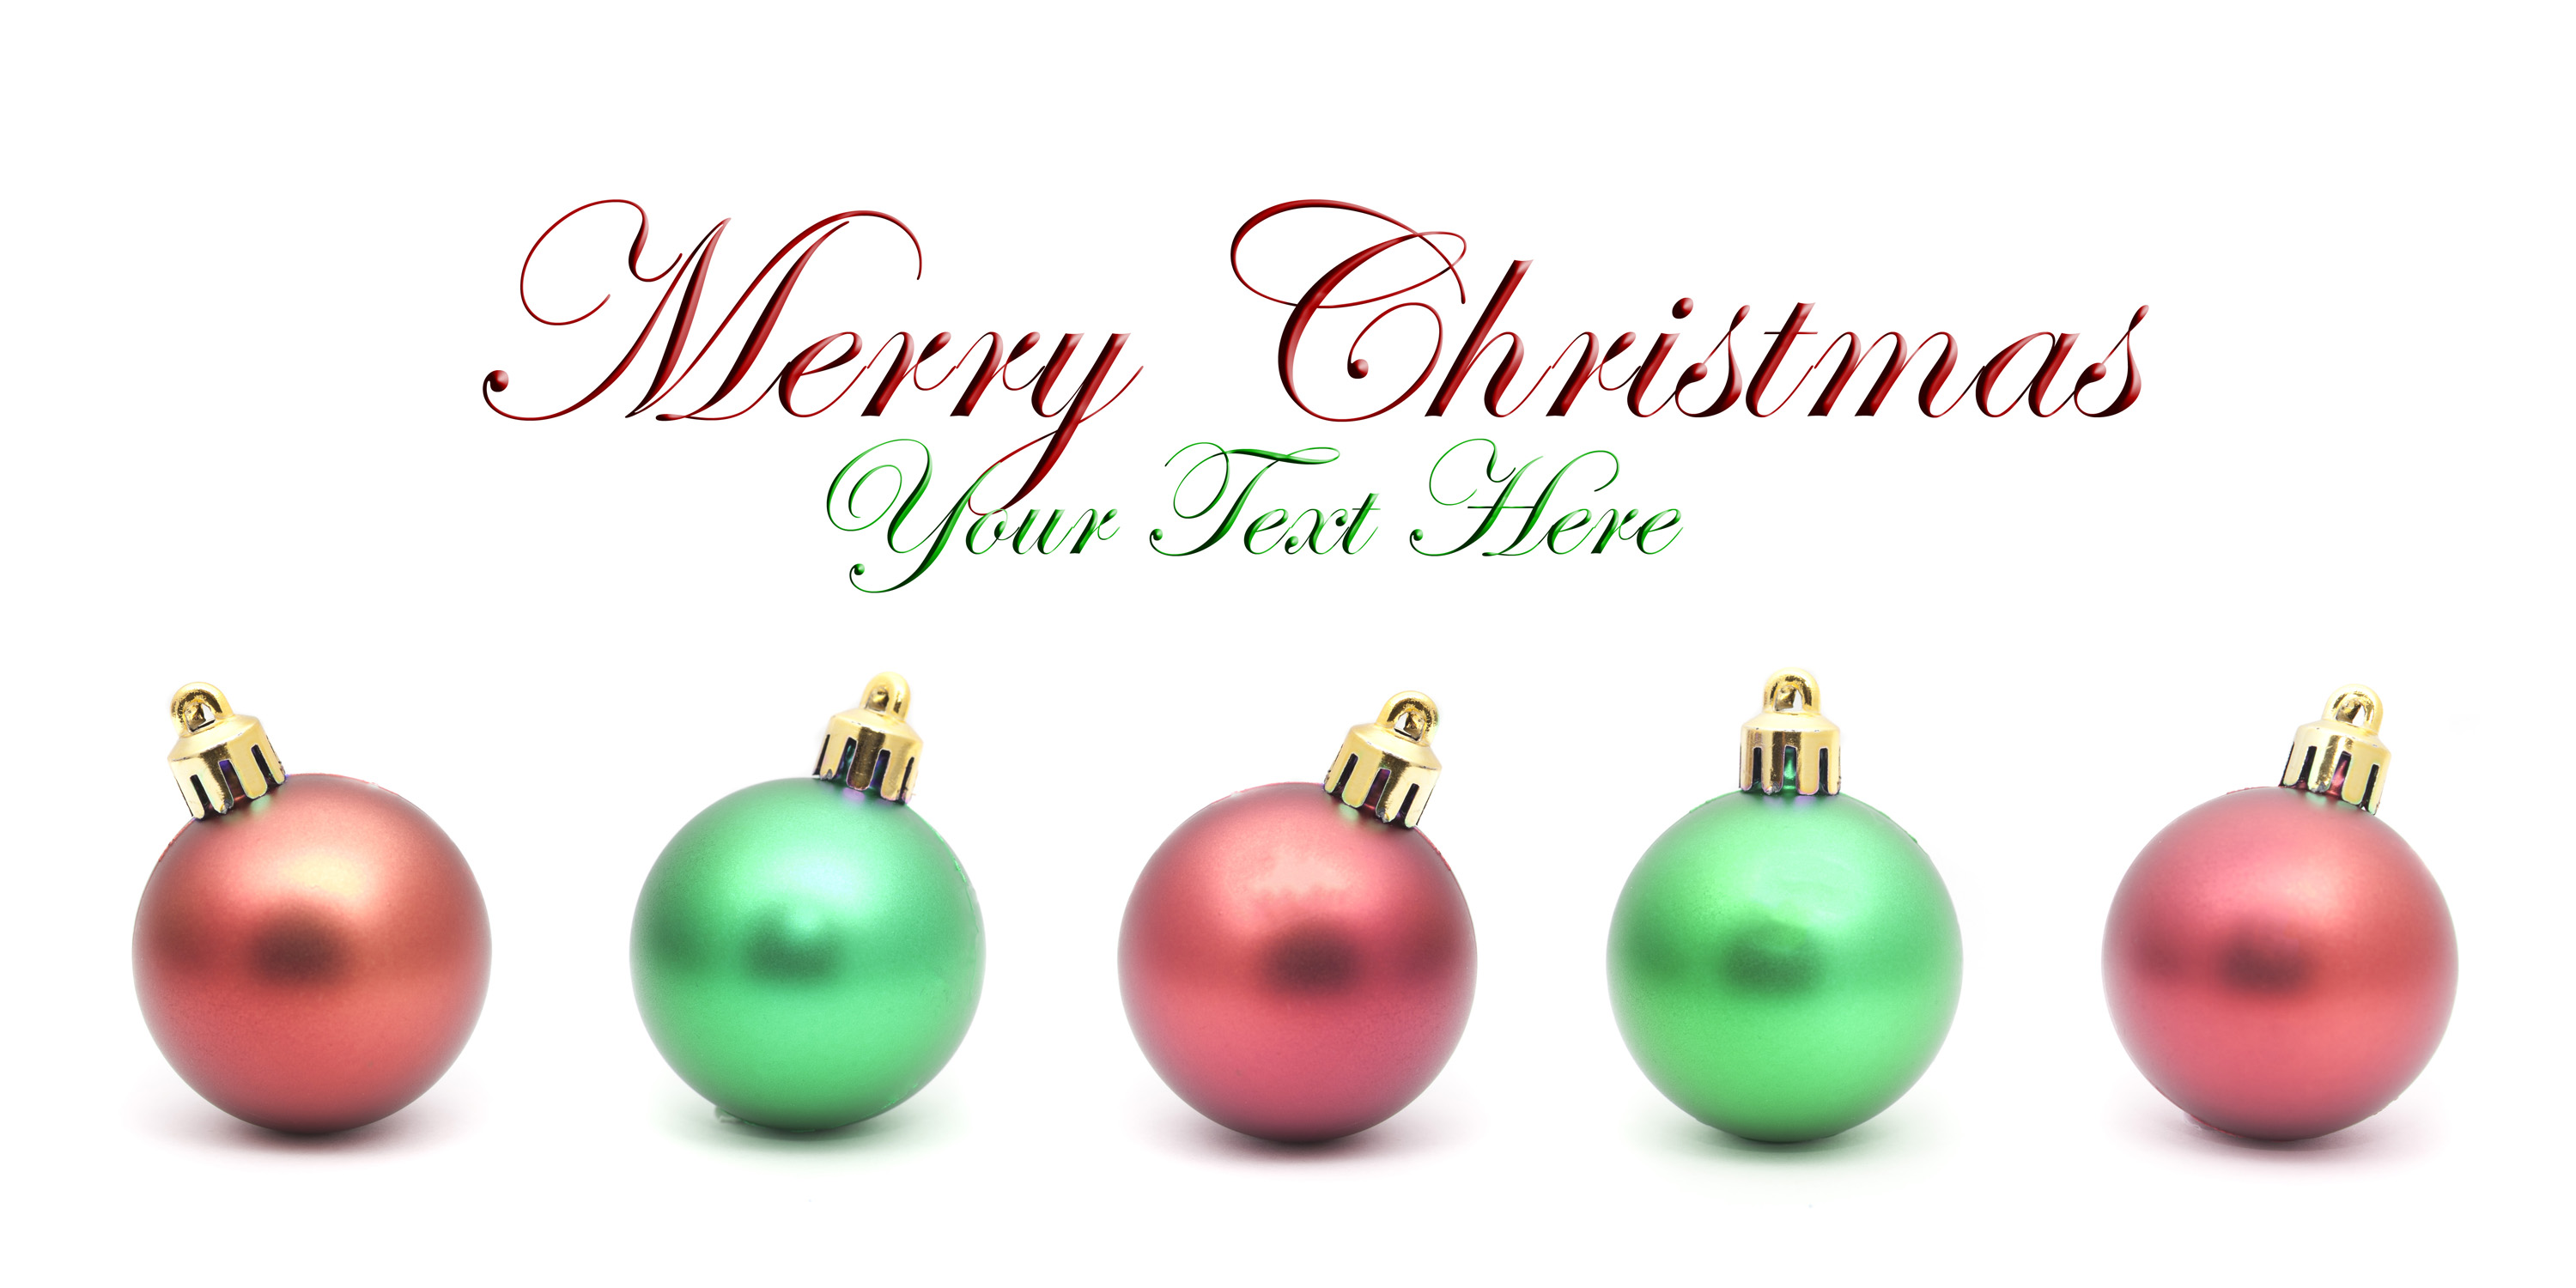 Red and green Christmas message with room for additional text above a row of alternating coloured baubles